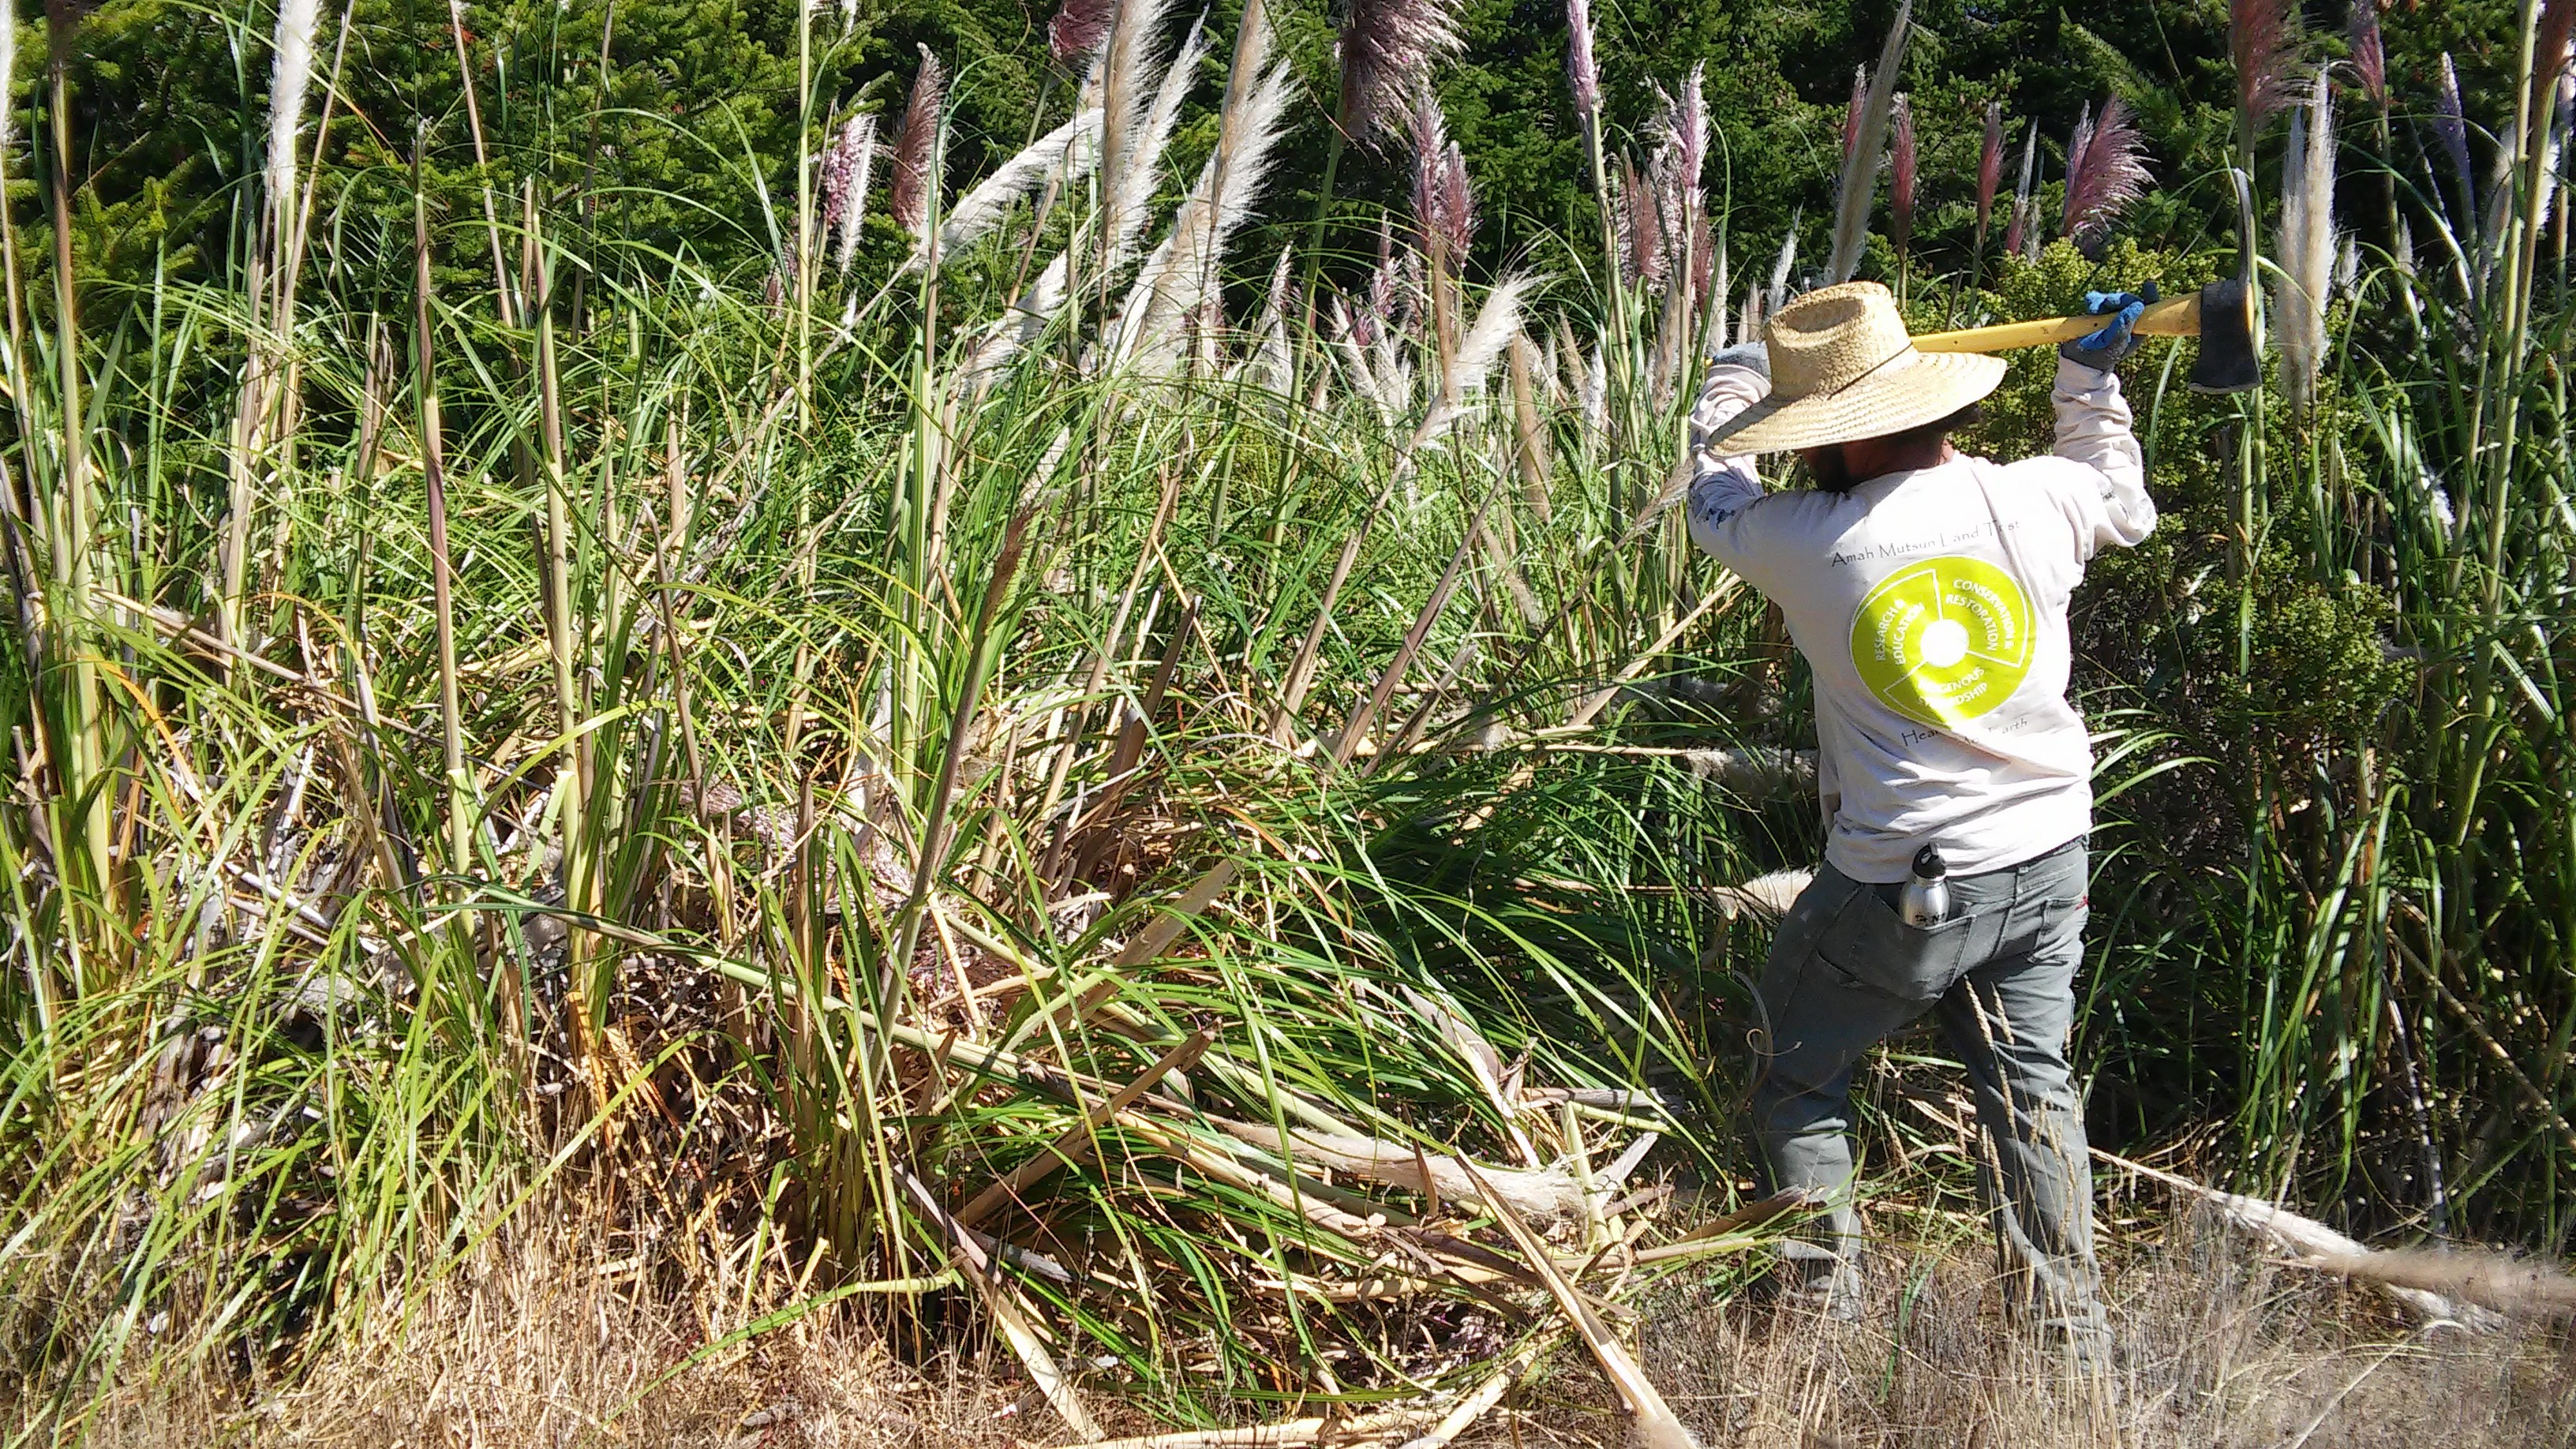 Native Steward Paul Lopez begins removal of a stand of Pampas grass (Cortaderia jubata) in the Costanoa Easement. The AMLT has been controlling the spread of the invasive Pampas grass at the Costanoa Easement for nearly two years, preventing the spread of the invasive grass into nearby Quiroste Valley Cultural Preserve. In 2015, Native Stewards spent two weeks removing  over 600 mature Pampas grass individuals. In the same 40-acre area, this year they removed over 350 individuals--many resprouts of former mature plants--in the course of only three days, demonstrating the efficacy of our previous restoration efforts.